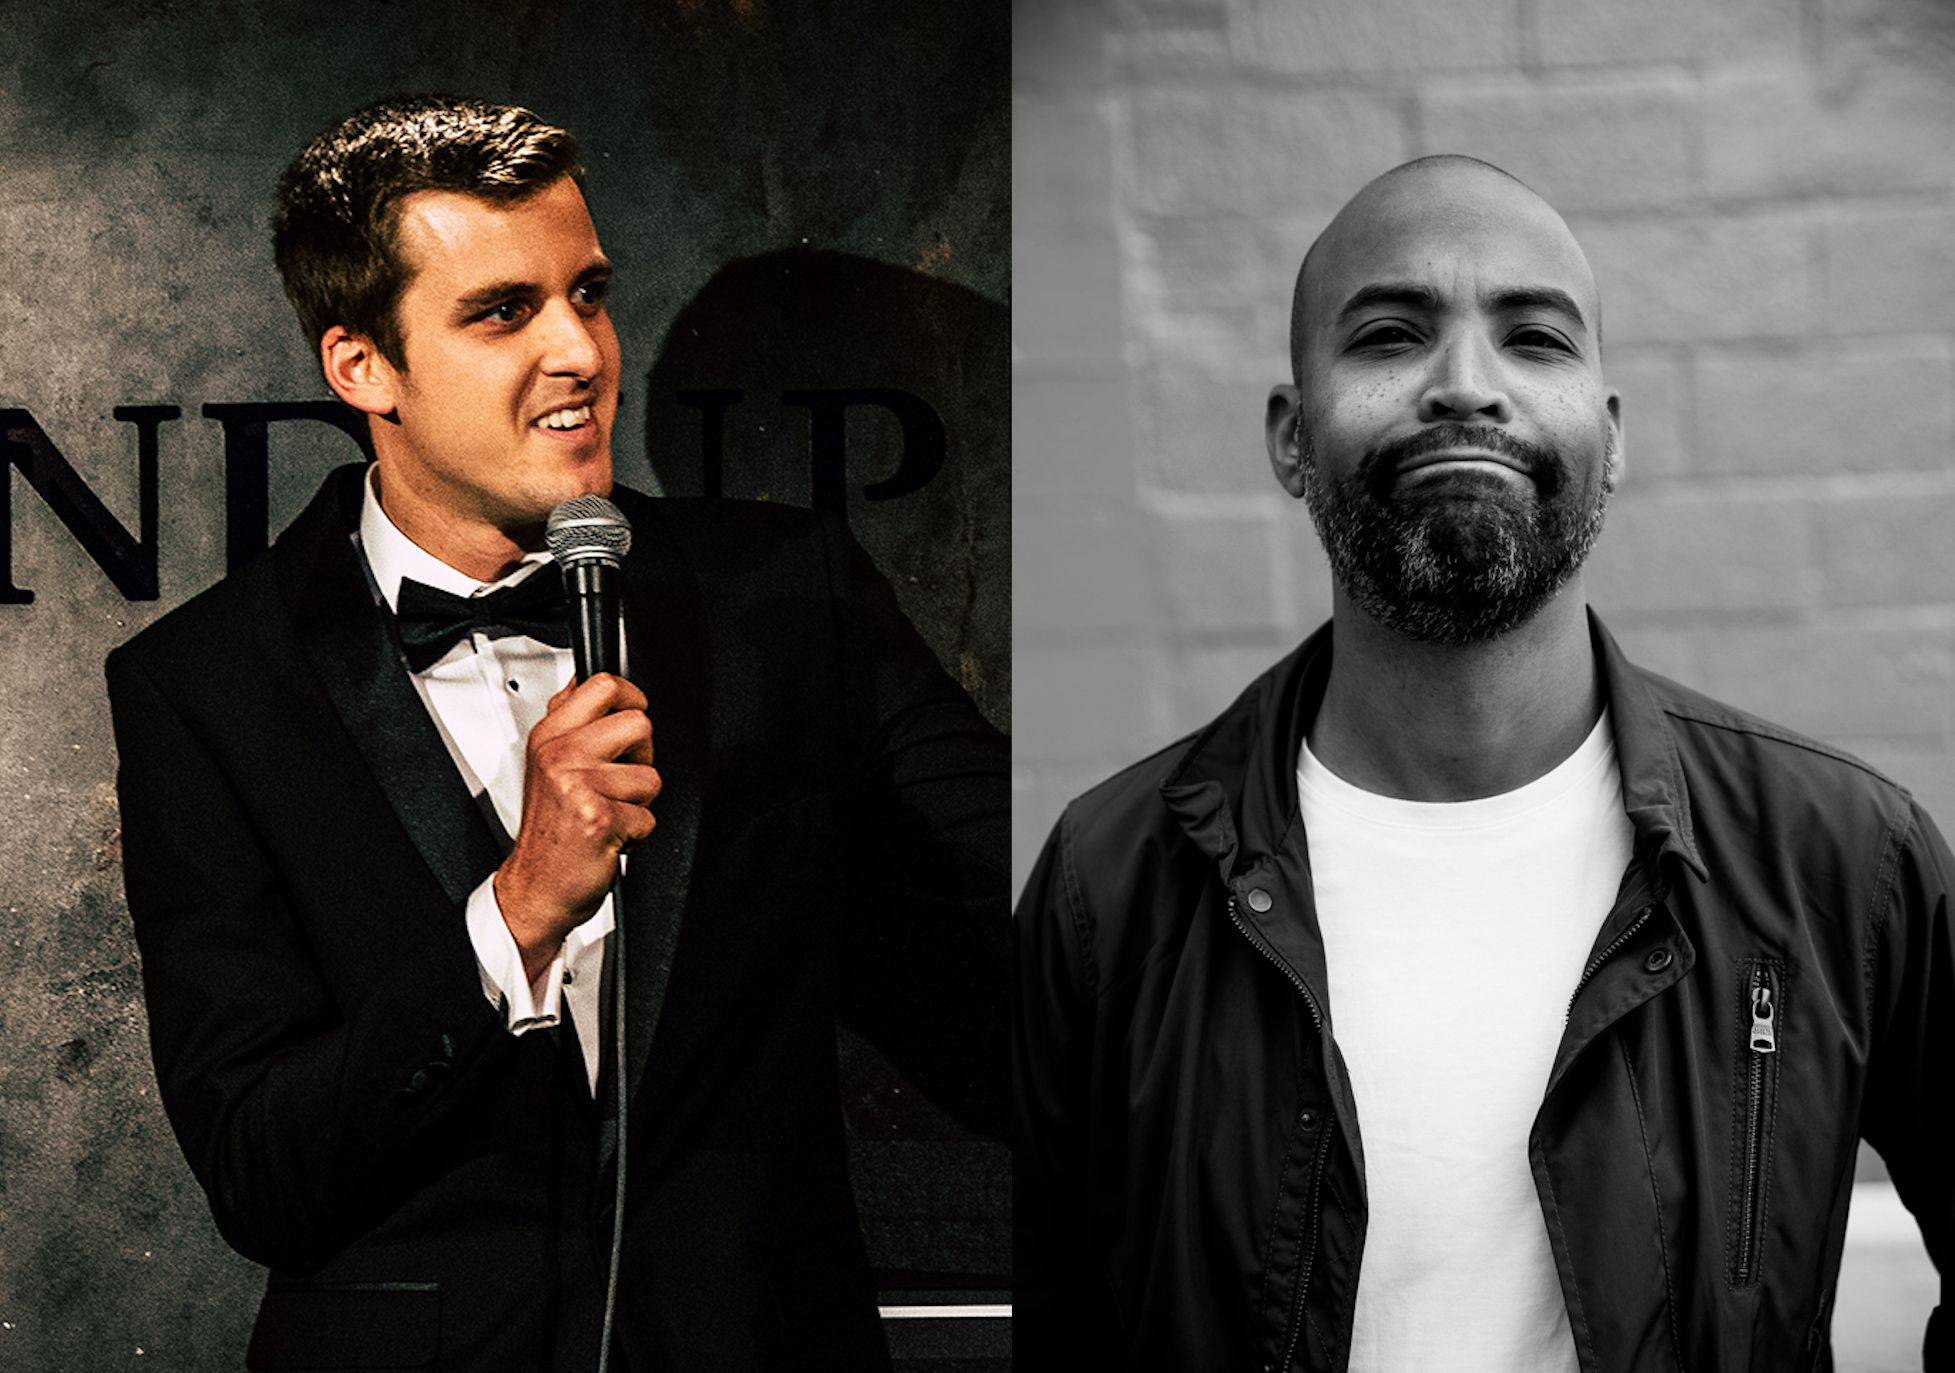 Art vs. Artist vs. Optics: Why We Wrote a Slapstick Comedy About Race, Even Though One of Us is a (Gulp) White Guy